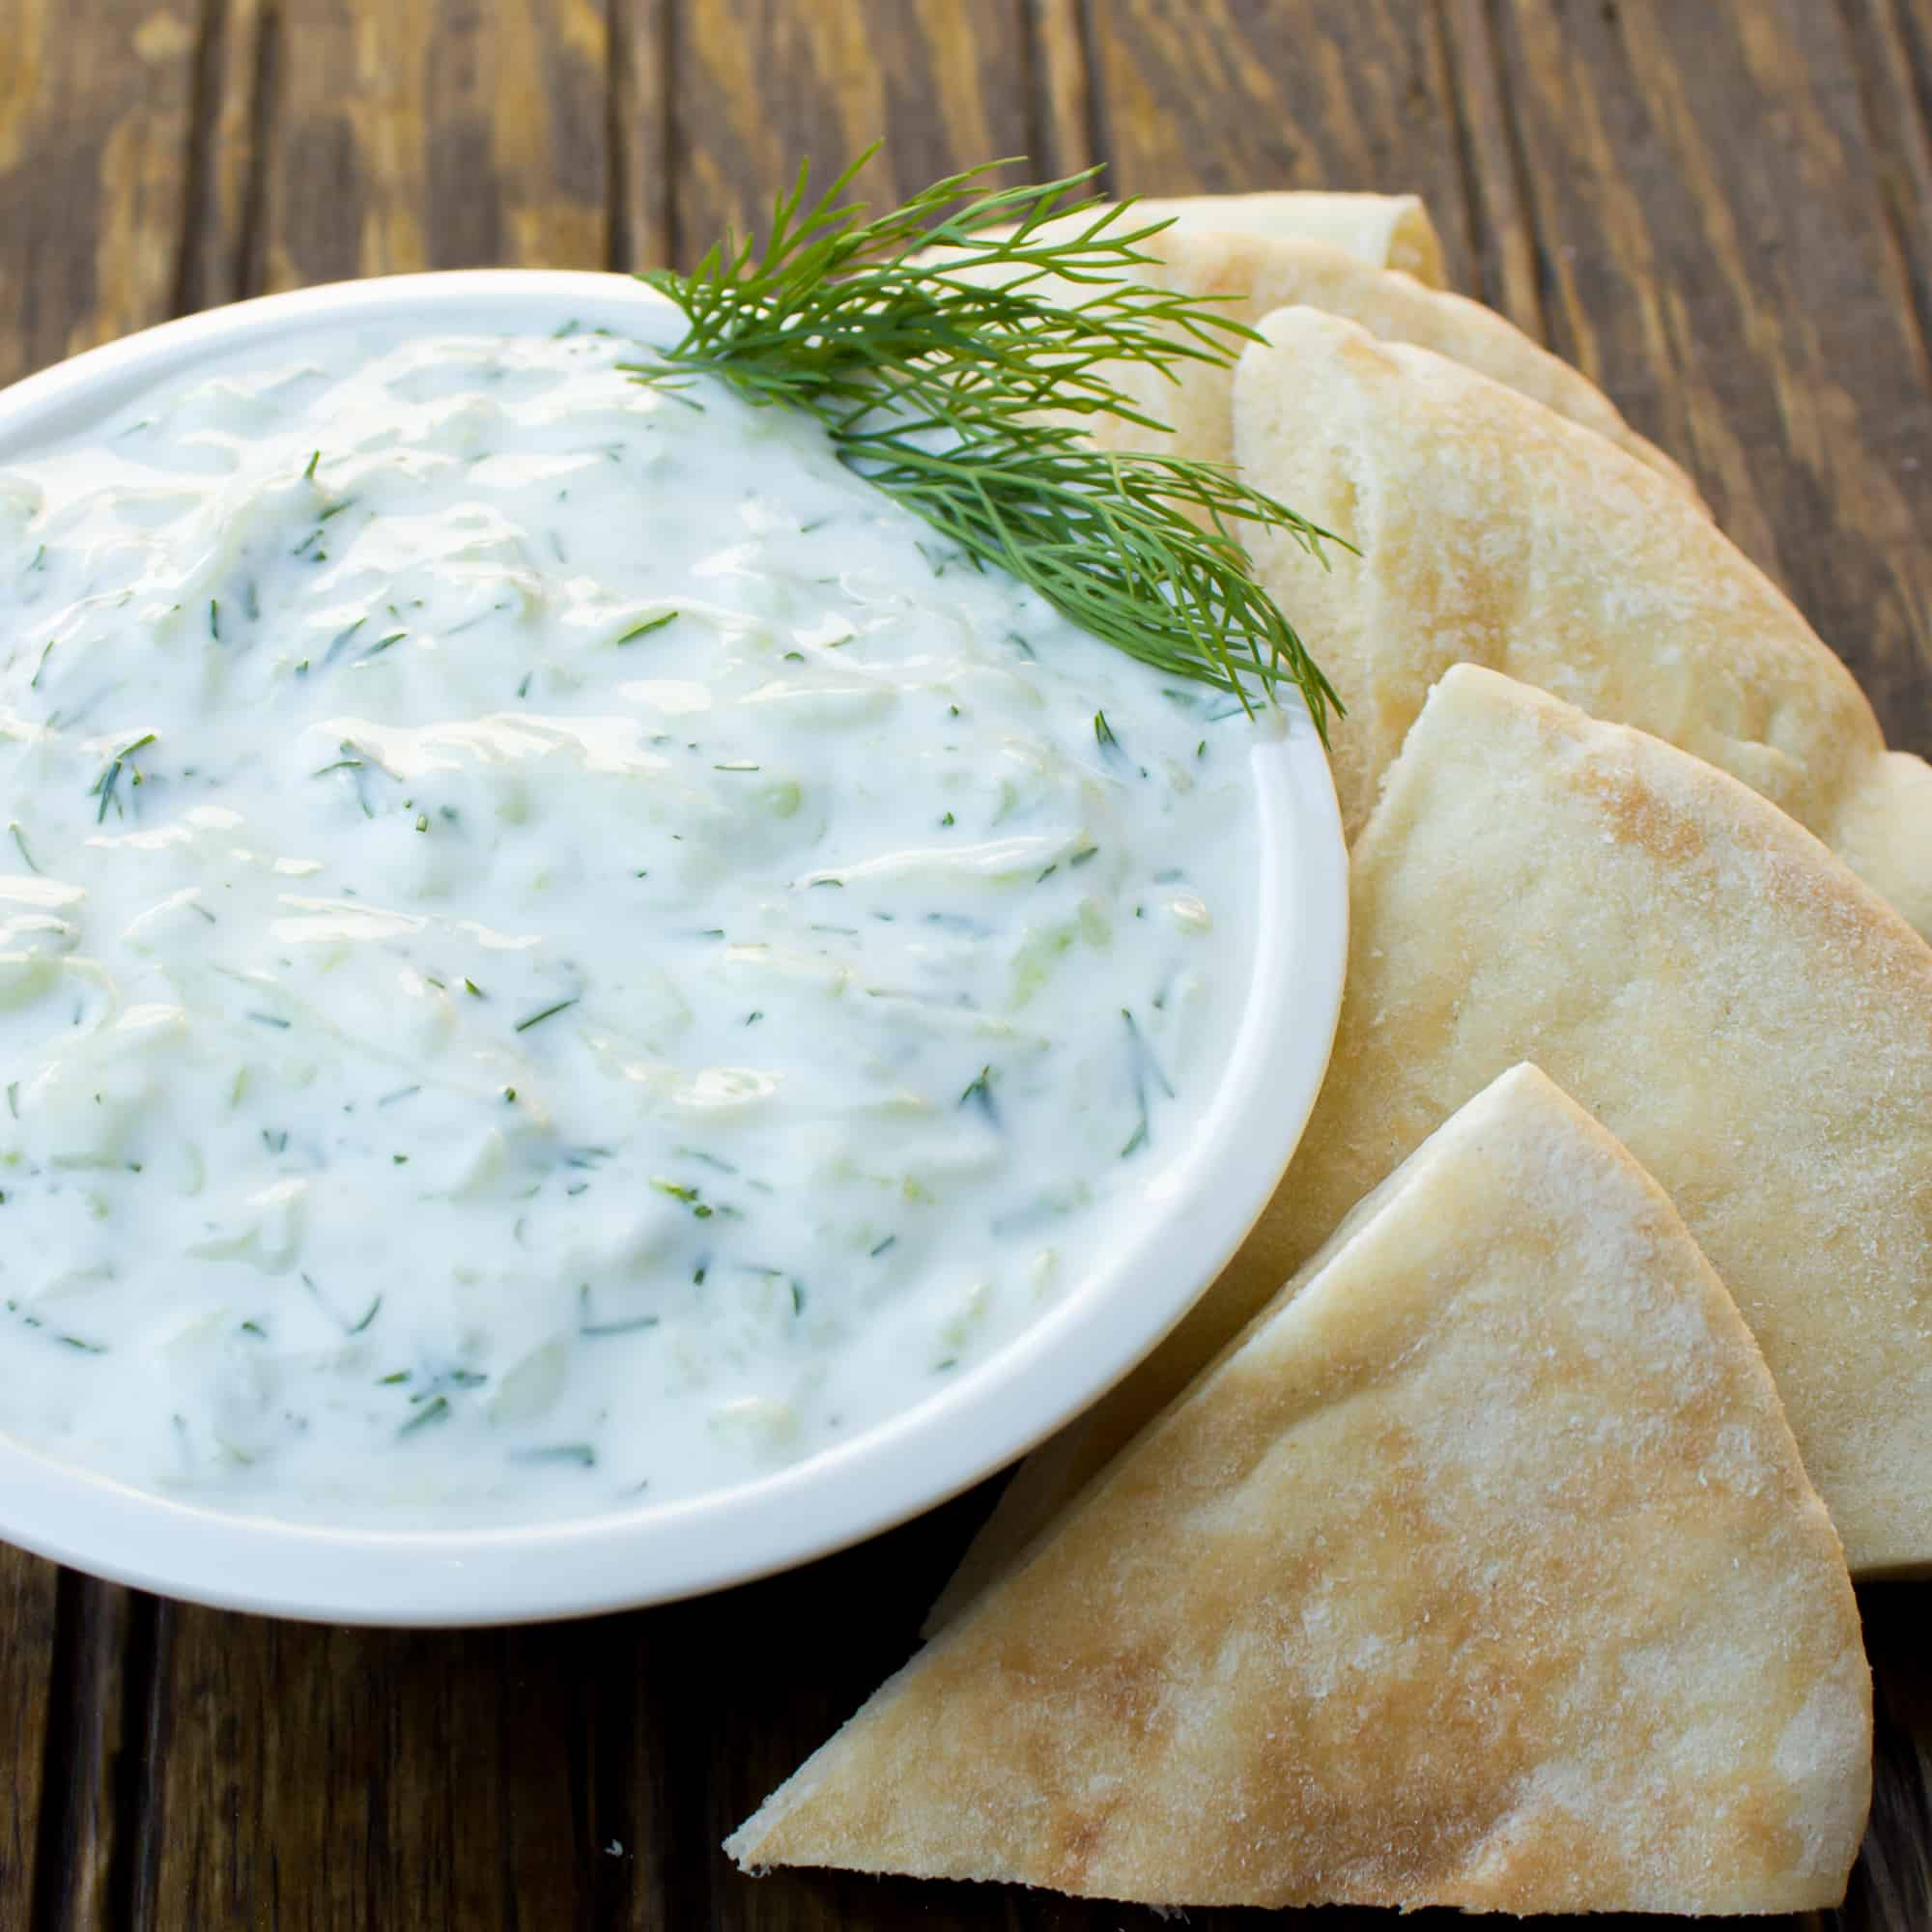 Greek tzatziki recipe with yogurt, cucumber, garlic, lemon juice and dill. Great with souvlaki, gyros or alongside hummus and pita bread.